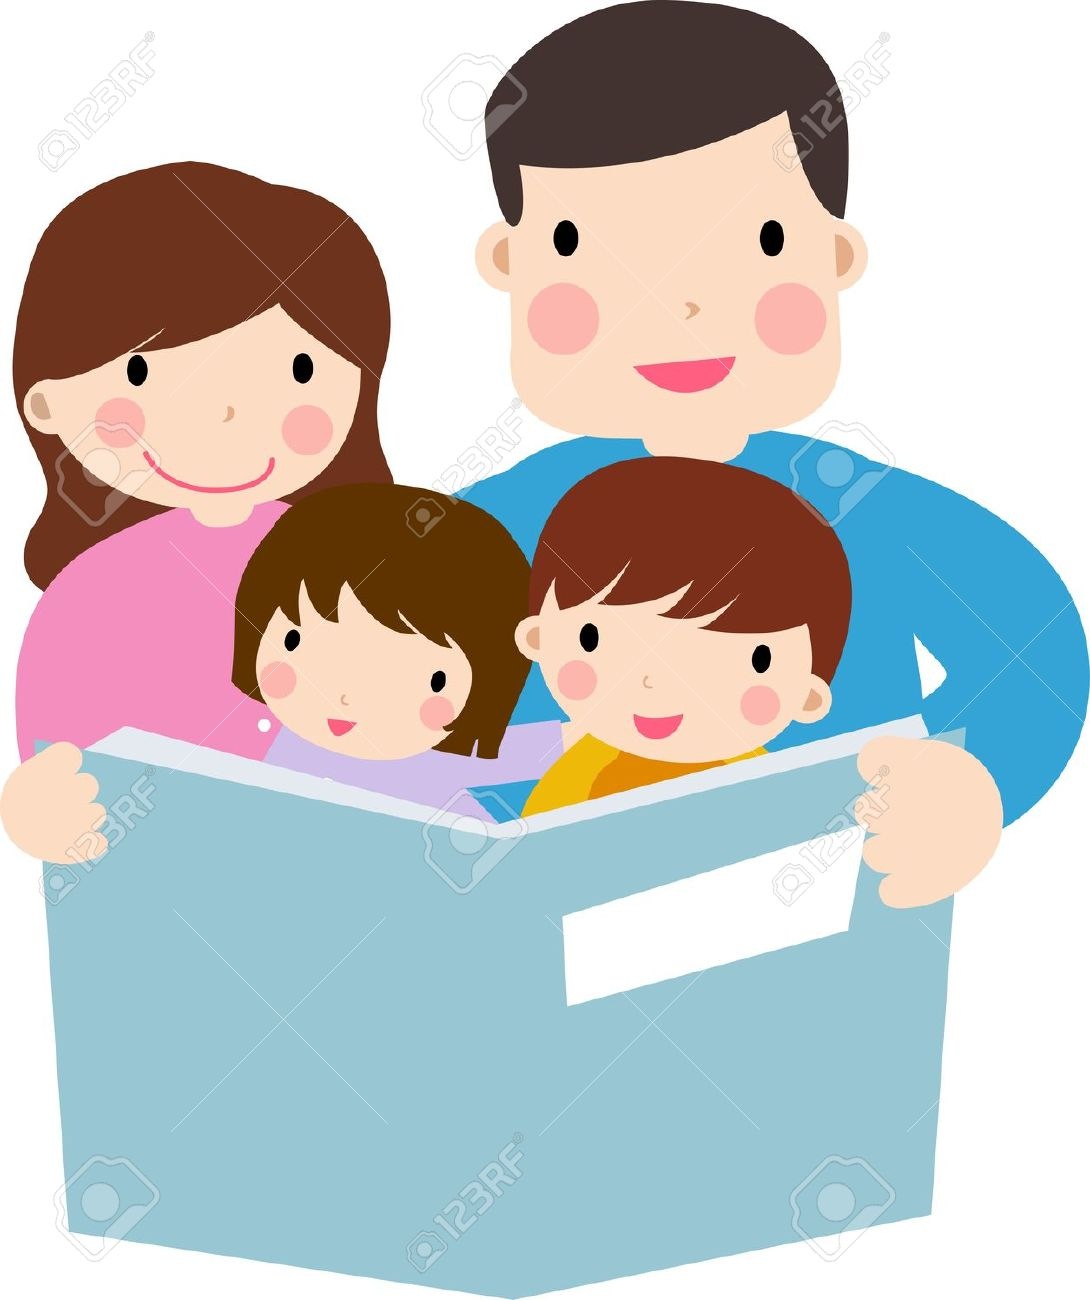 Clip art of child with parent.